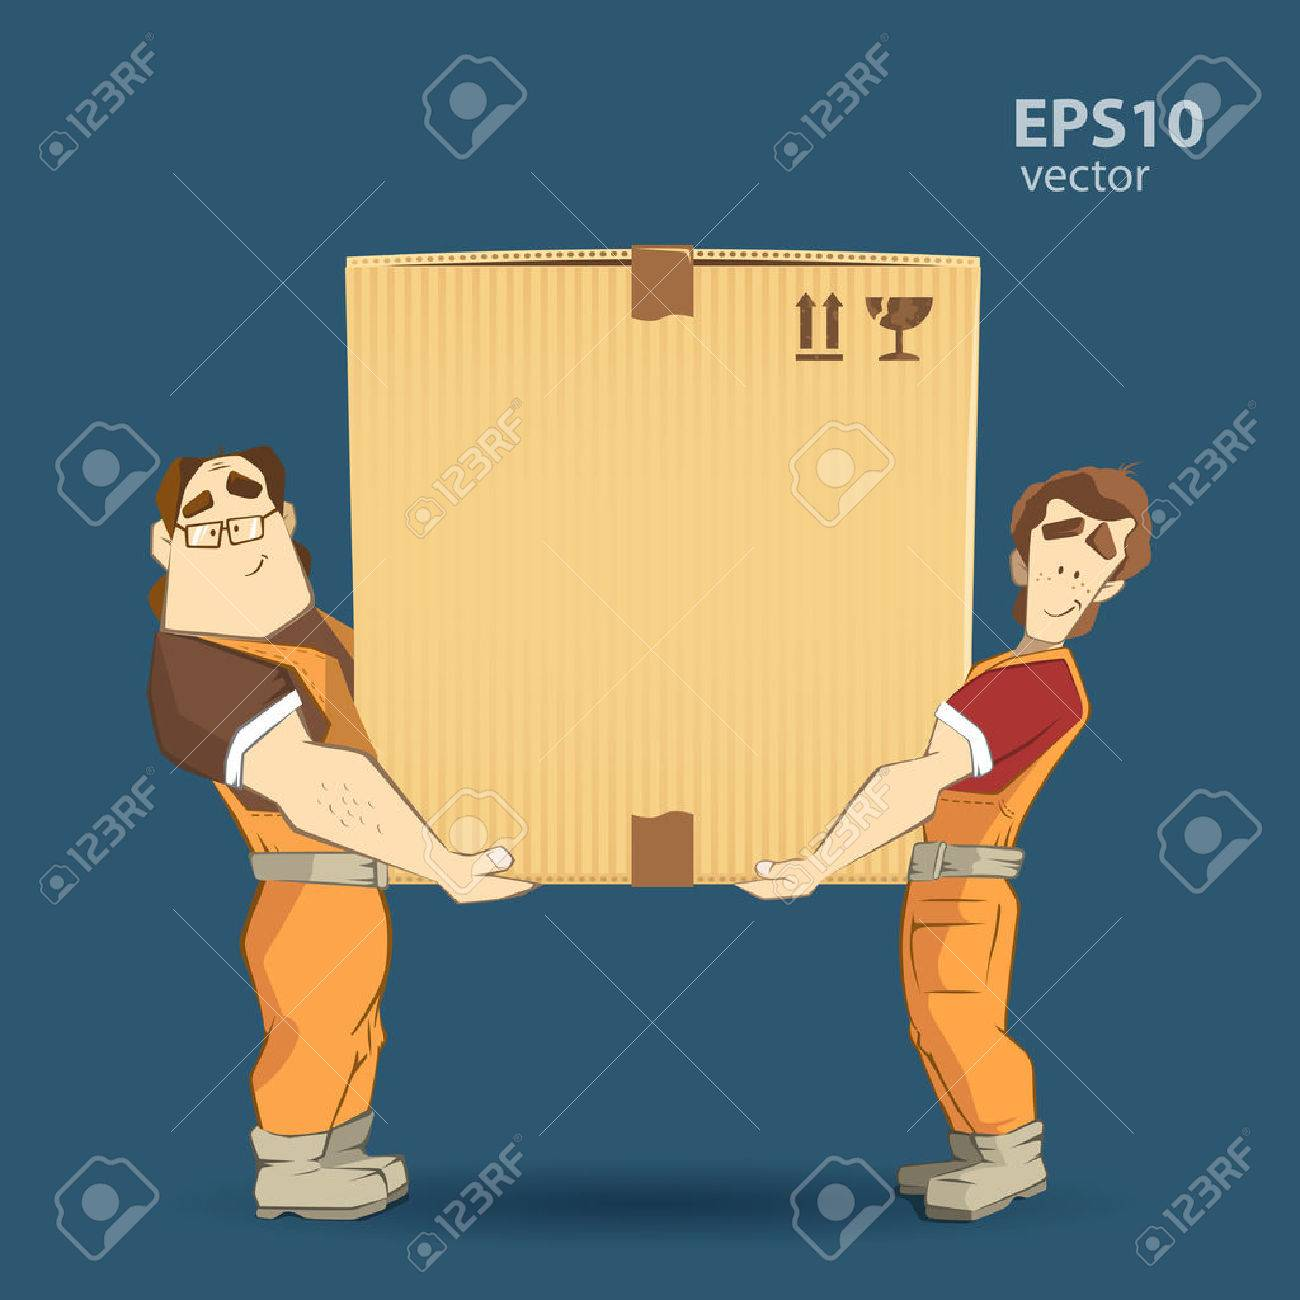 Transportation and delivery company illustration. Two workers mover man holding and carrying big heavy carton cardboard box. 3d color vector creative concept with characters. - 50570467